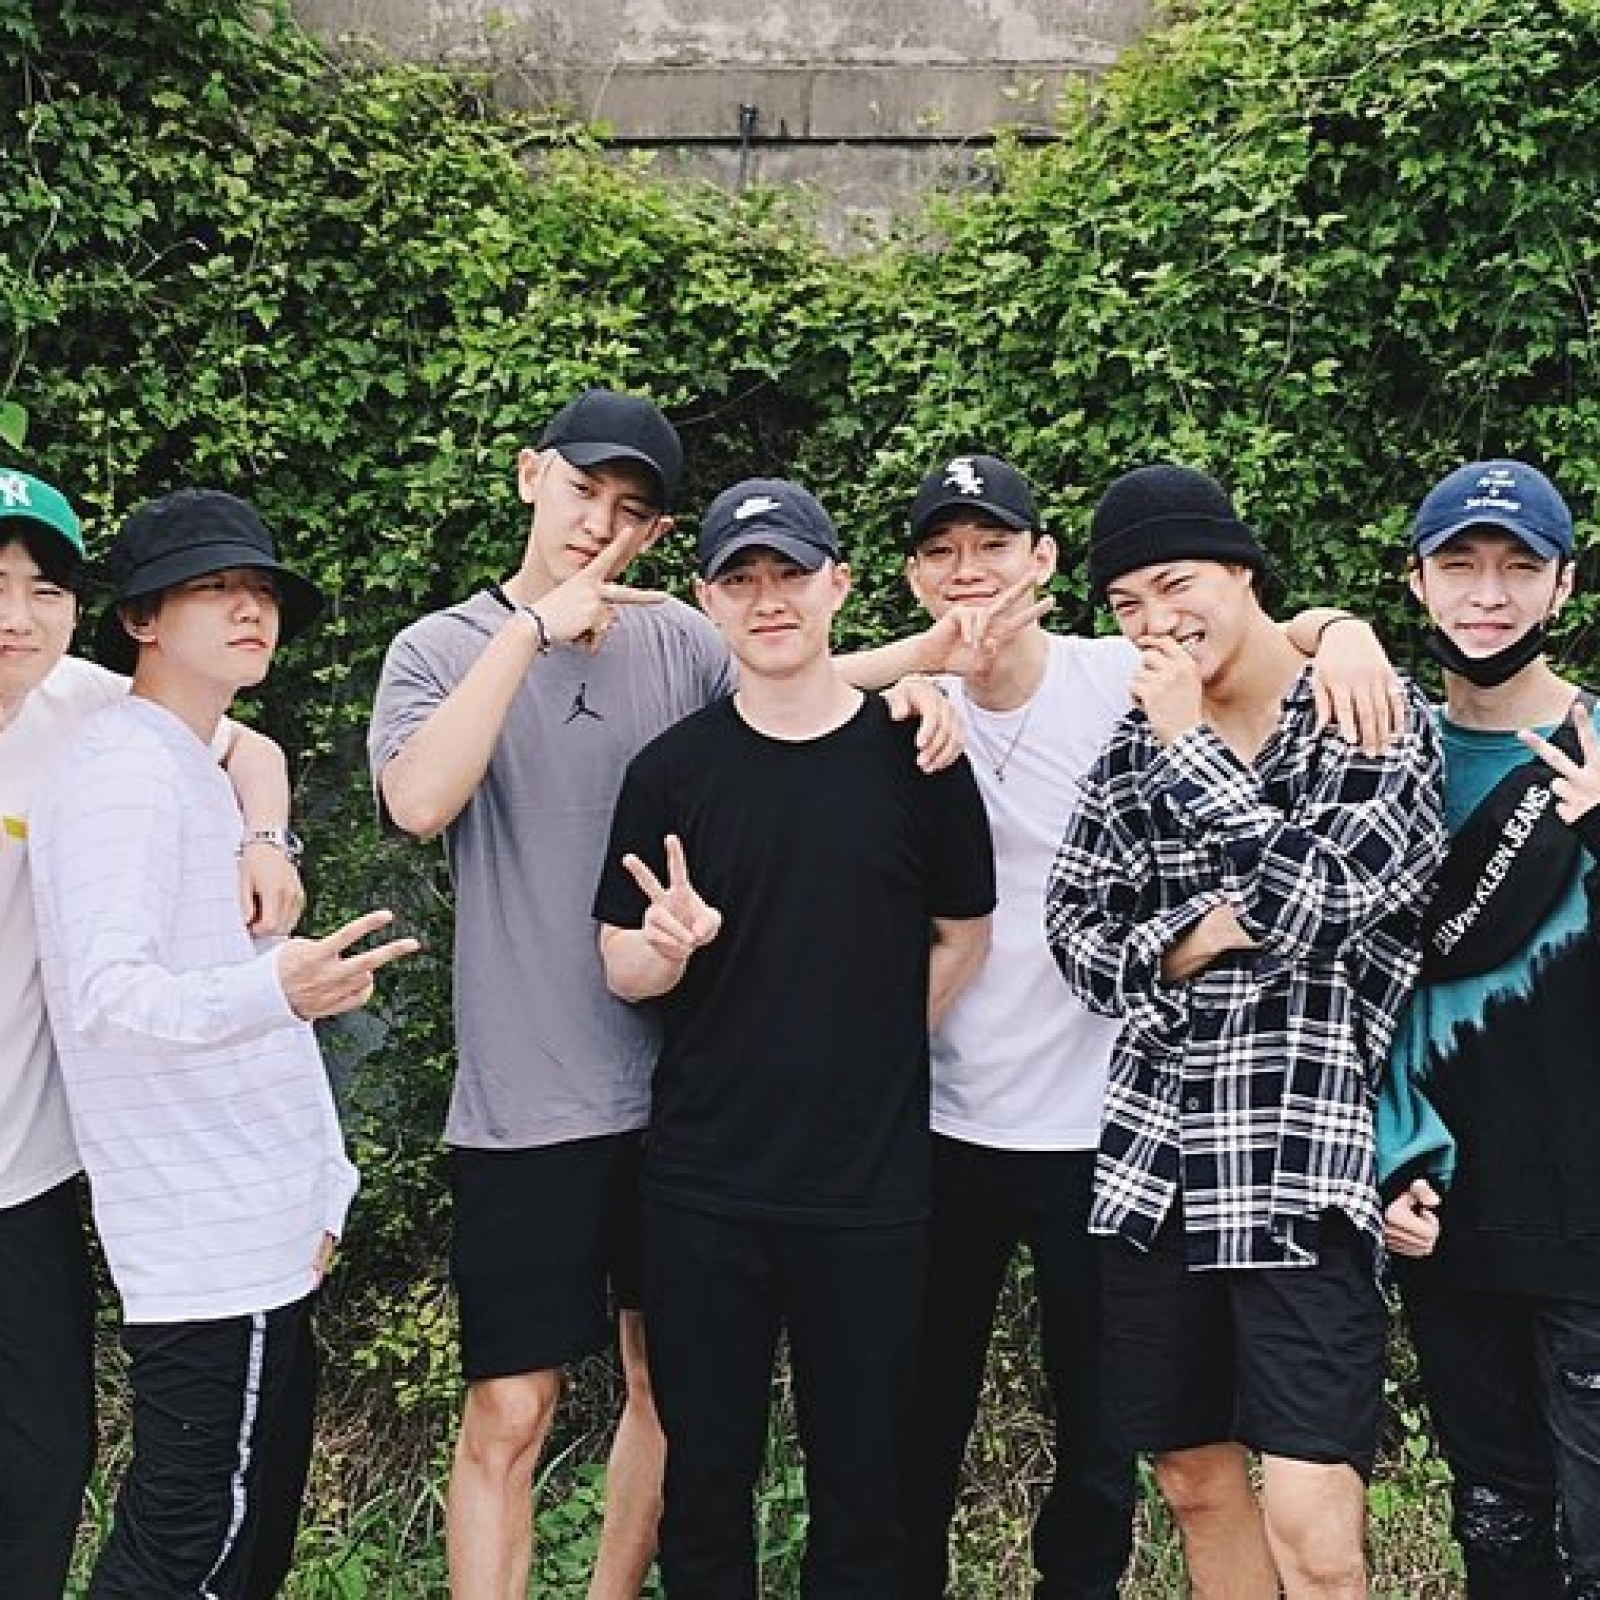 Fans Delighted After K Pop Star Zhang Yixing Joins Exo To See Off